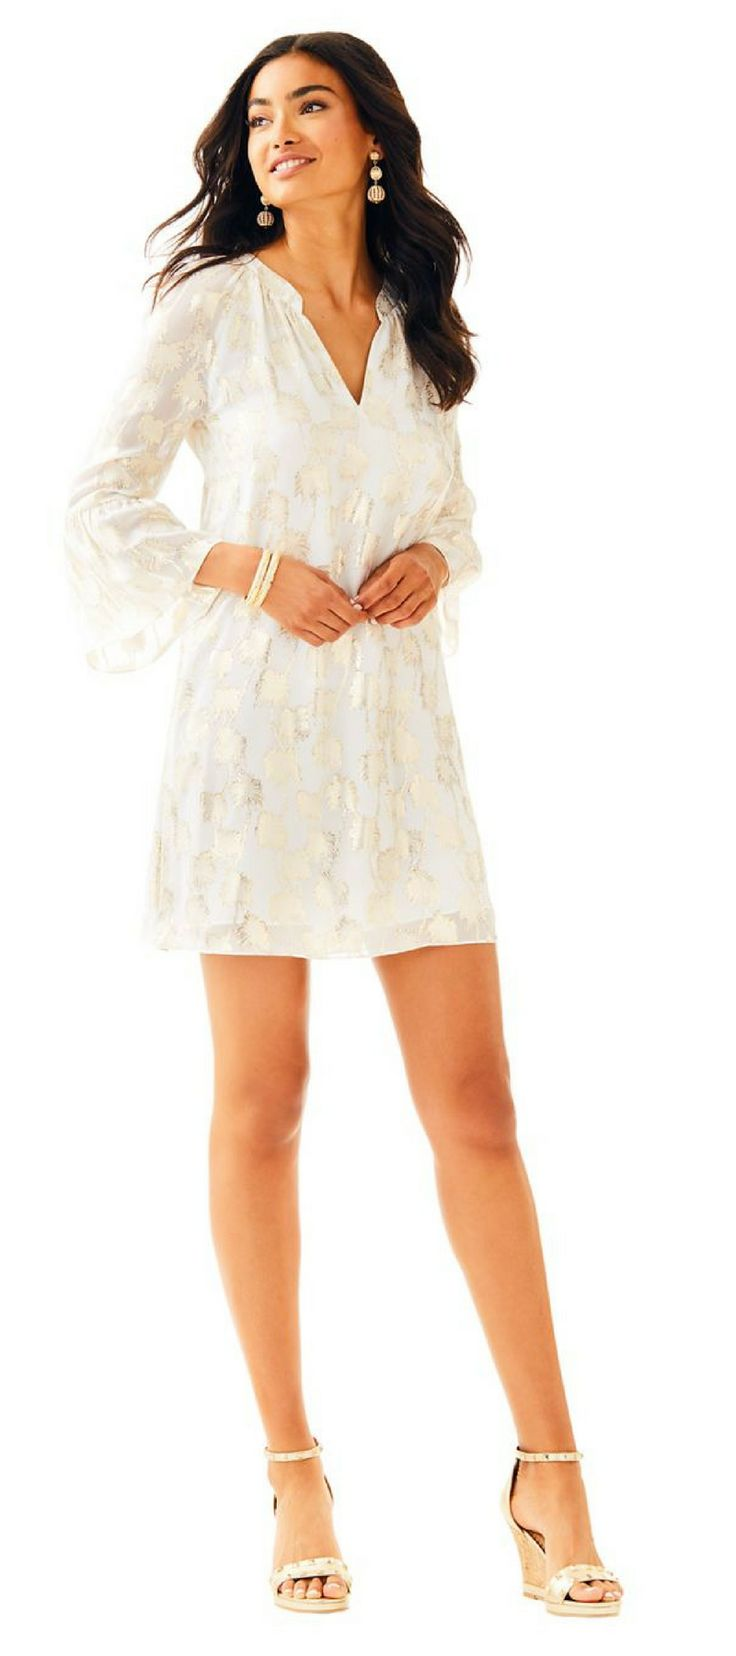 Looking for a long sleeve tunic dress? Search no more- the Matilda Silk Tunic Dress is a party dress with flouncy sleeves and metallic palm tree details. We love being best dressed at any event! Lilly Pulitzer Matlida Silk Tunic Dress #LillyPulitzer #OutfitoftheDay #WinterOutfits #WomensFashion #affiliate #SummerOutfits #DresstoImpress #SpringOutfits #OutfitGoals #CasualDress #WorkOutfits #ValentinesDayOutfits #DateNightOutfits